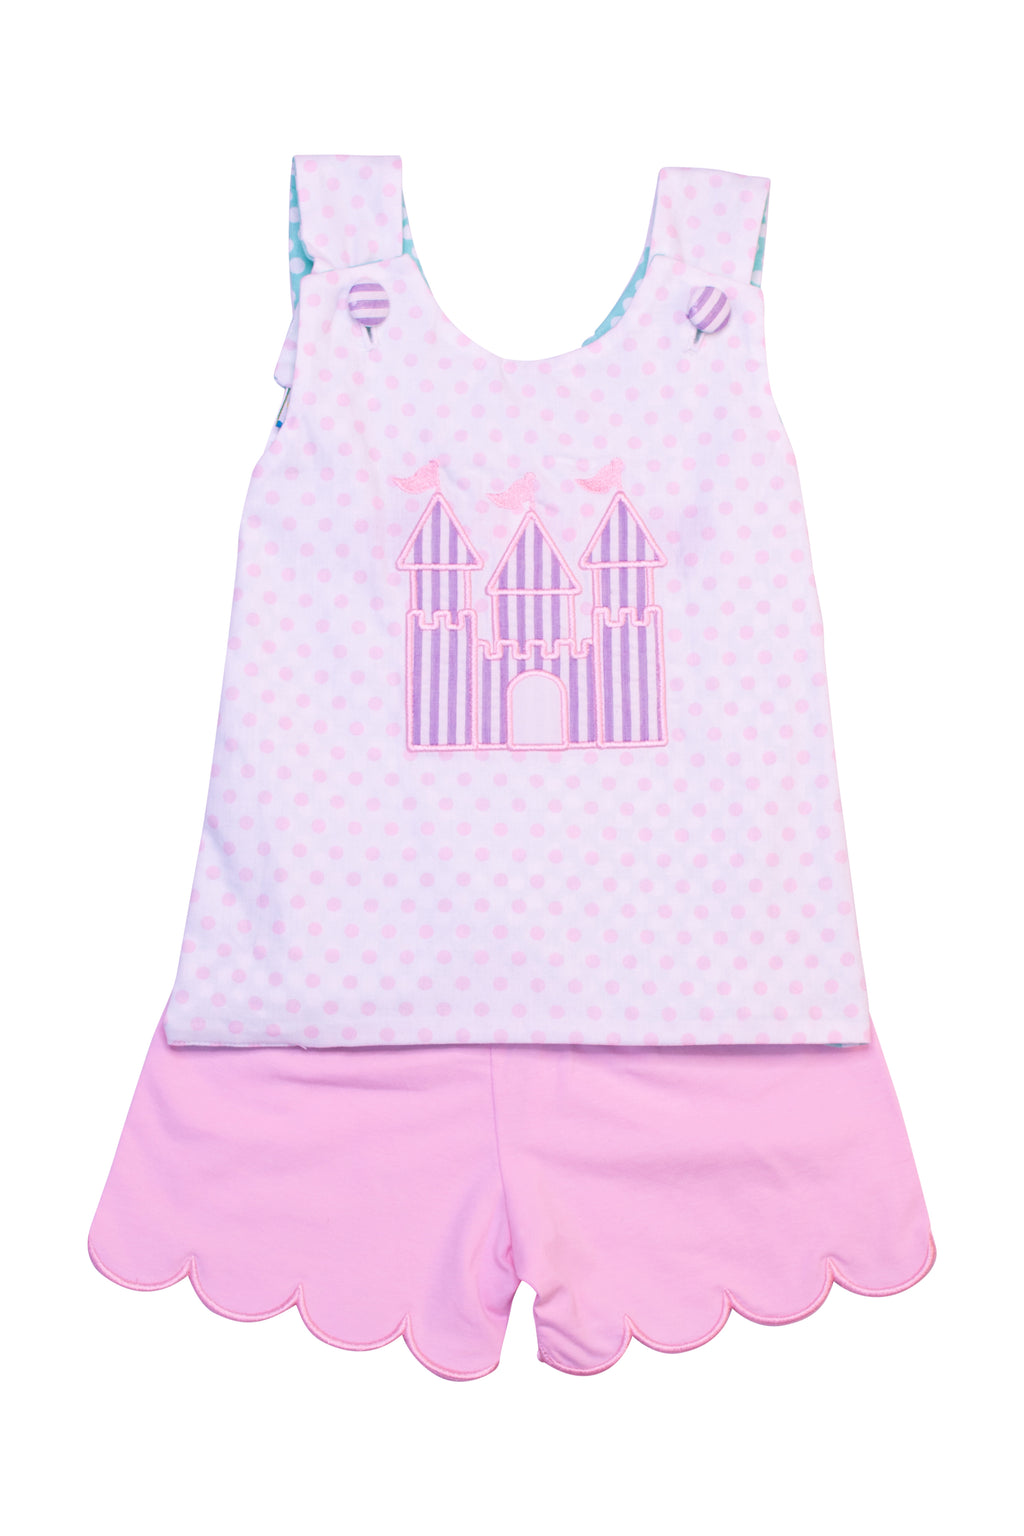 Girls Reversible Castle/Tea Party Short Set